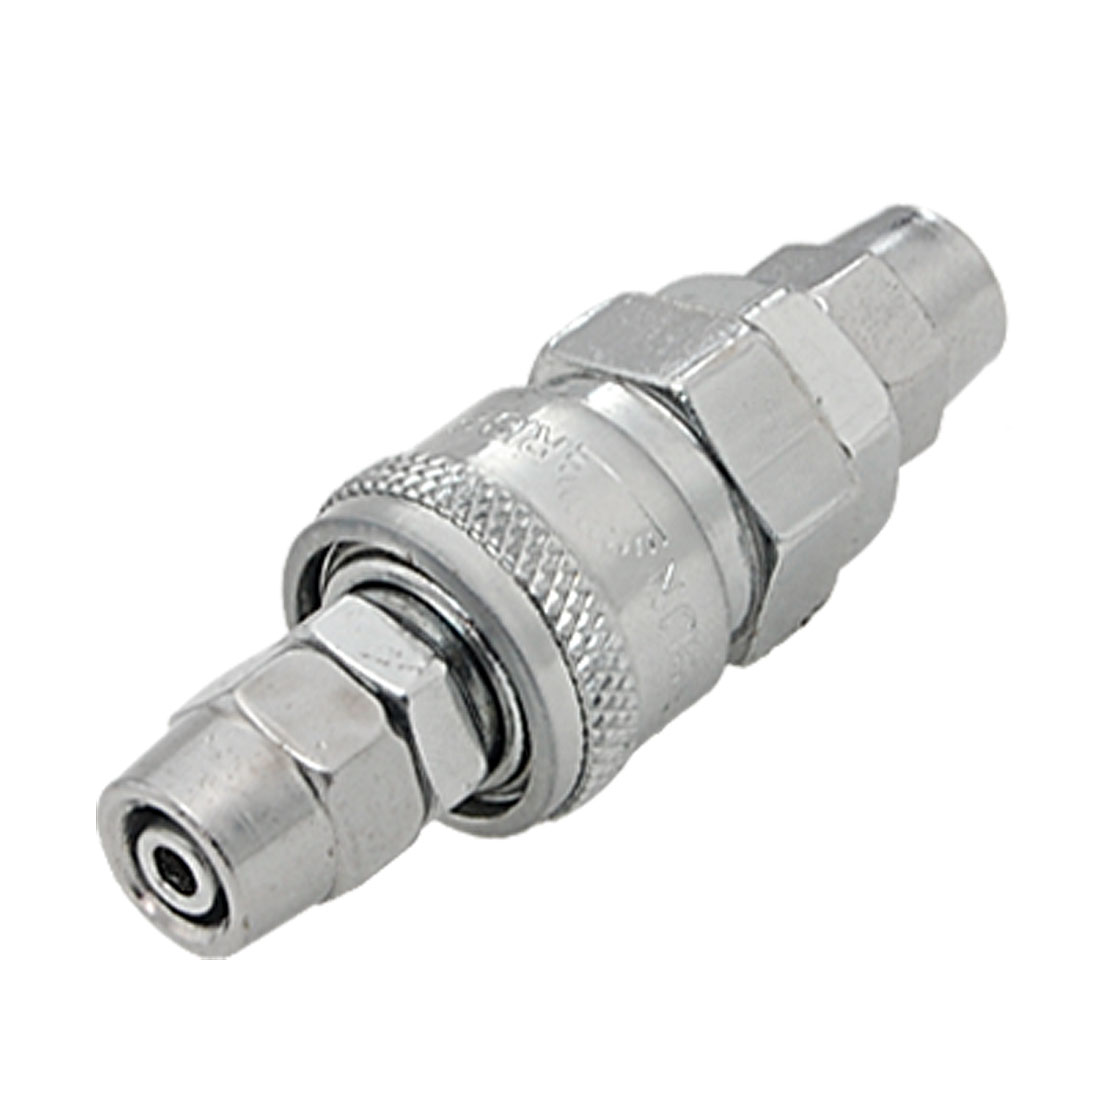 5mm-x-8mm-Push-In-Fittings-Straight-Pneumatic-Adapter